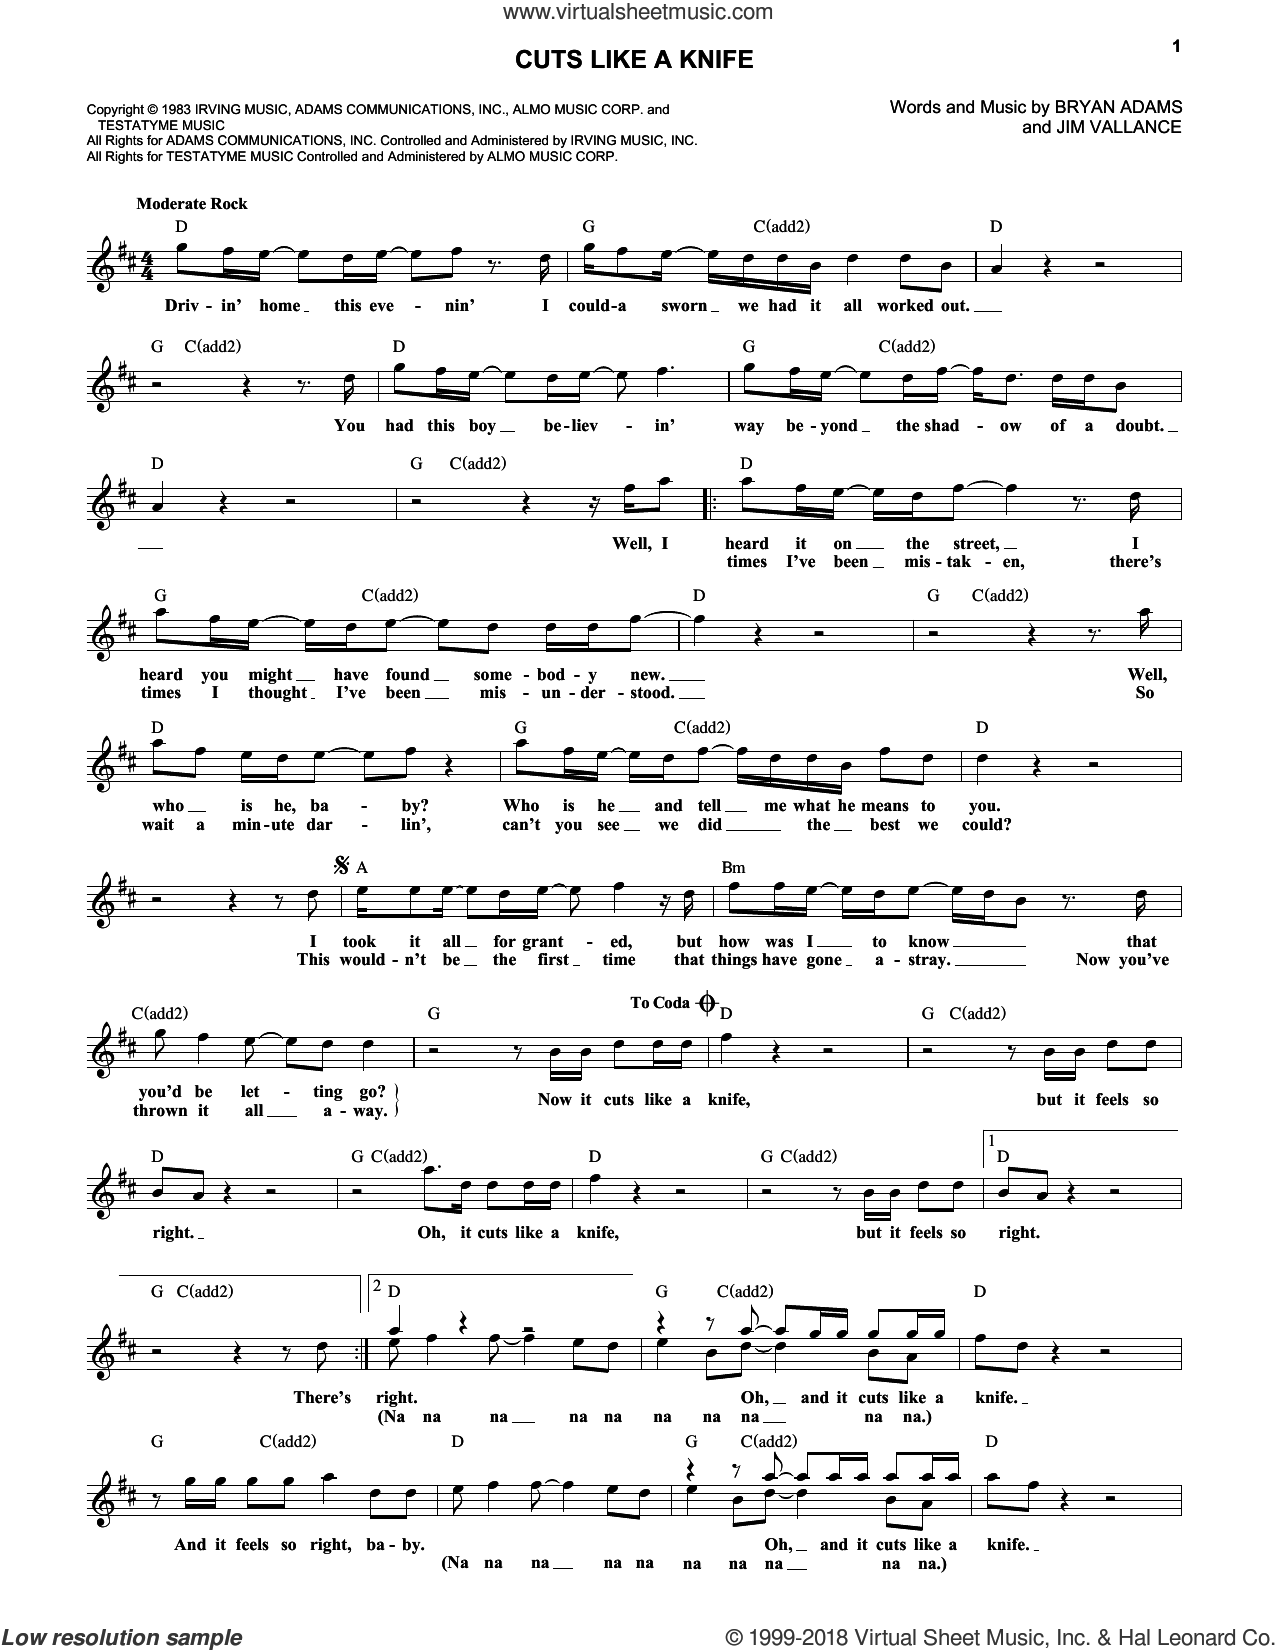 Cuts Like A Knife sheet music for voice and other instruments (fake book) by Bryan Adams and Jim Vallance